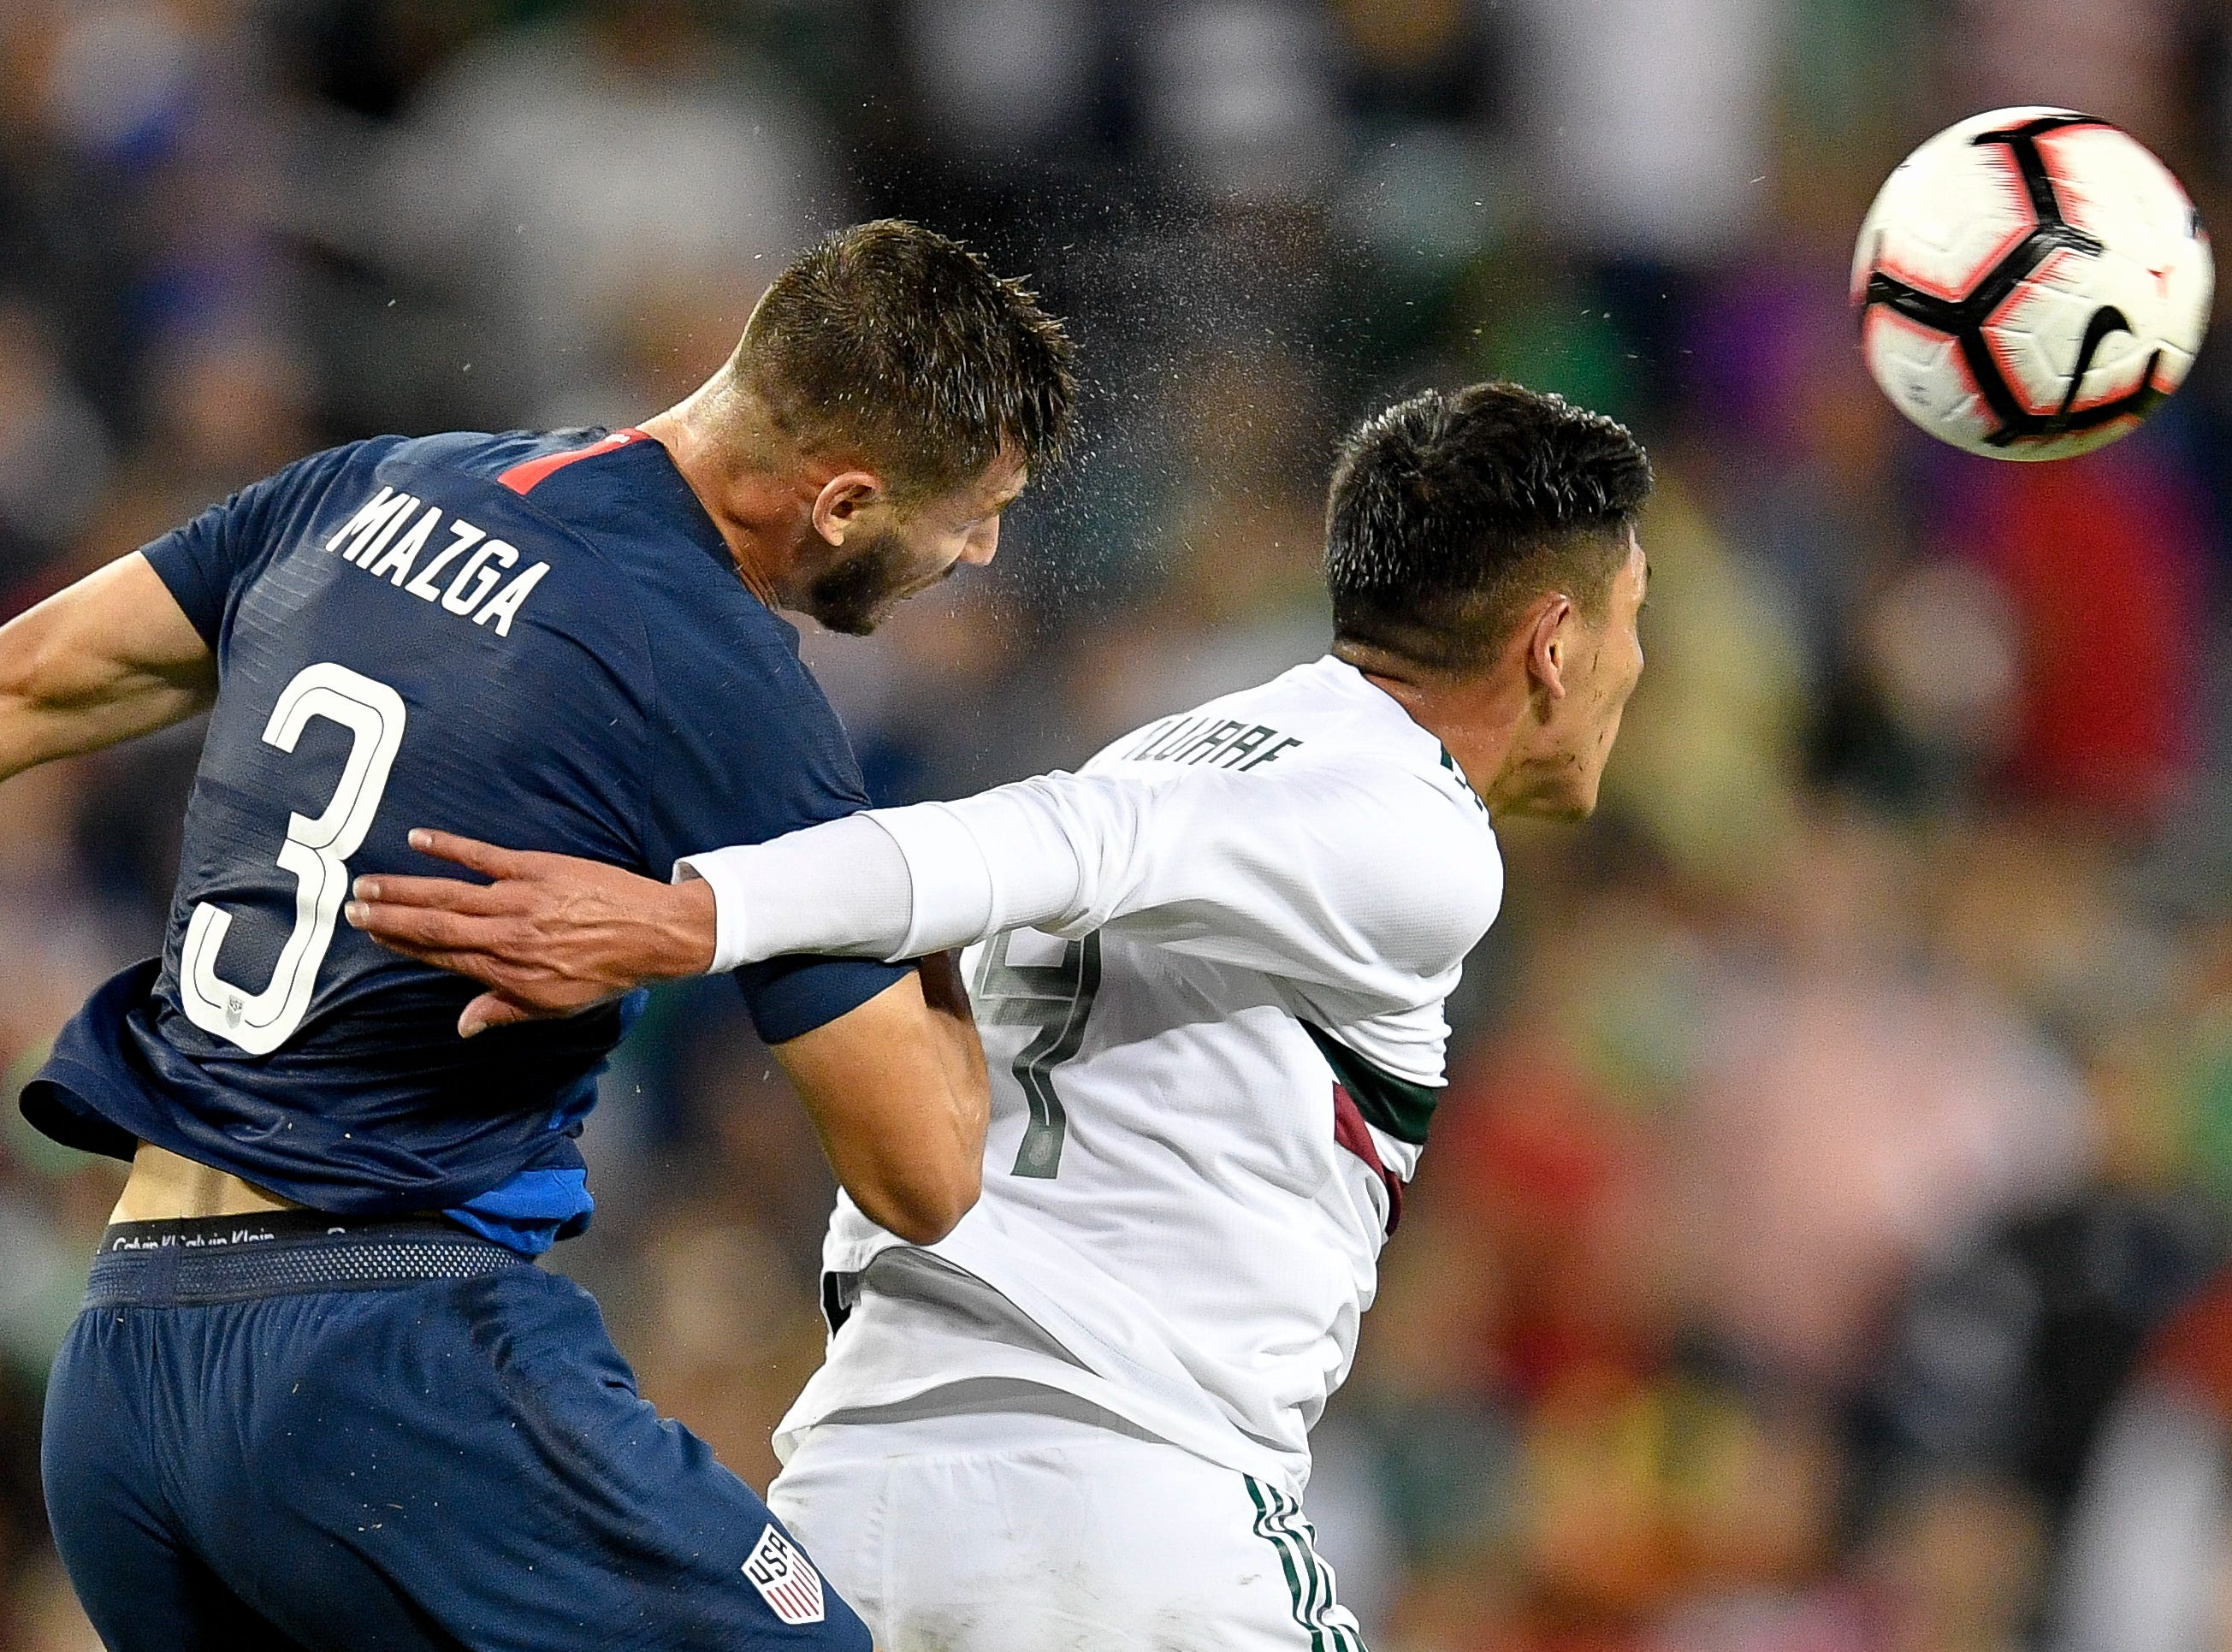 USA defender Matt Miazga (3) goers for a header with Mexico defender Edson Alvarez (4) during the second half at Nissan Stadium in Nashville, Tenn., Tuesday, Sept. 11, 2018.